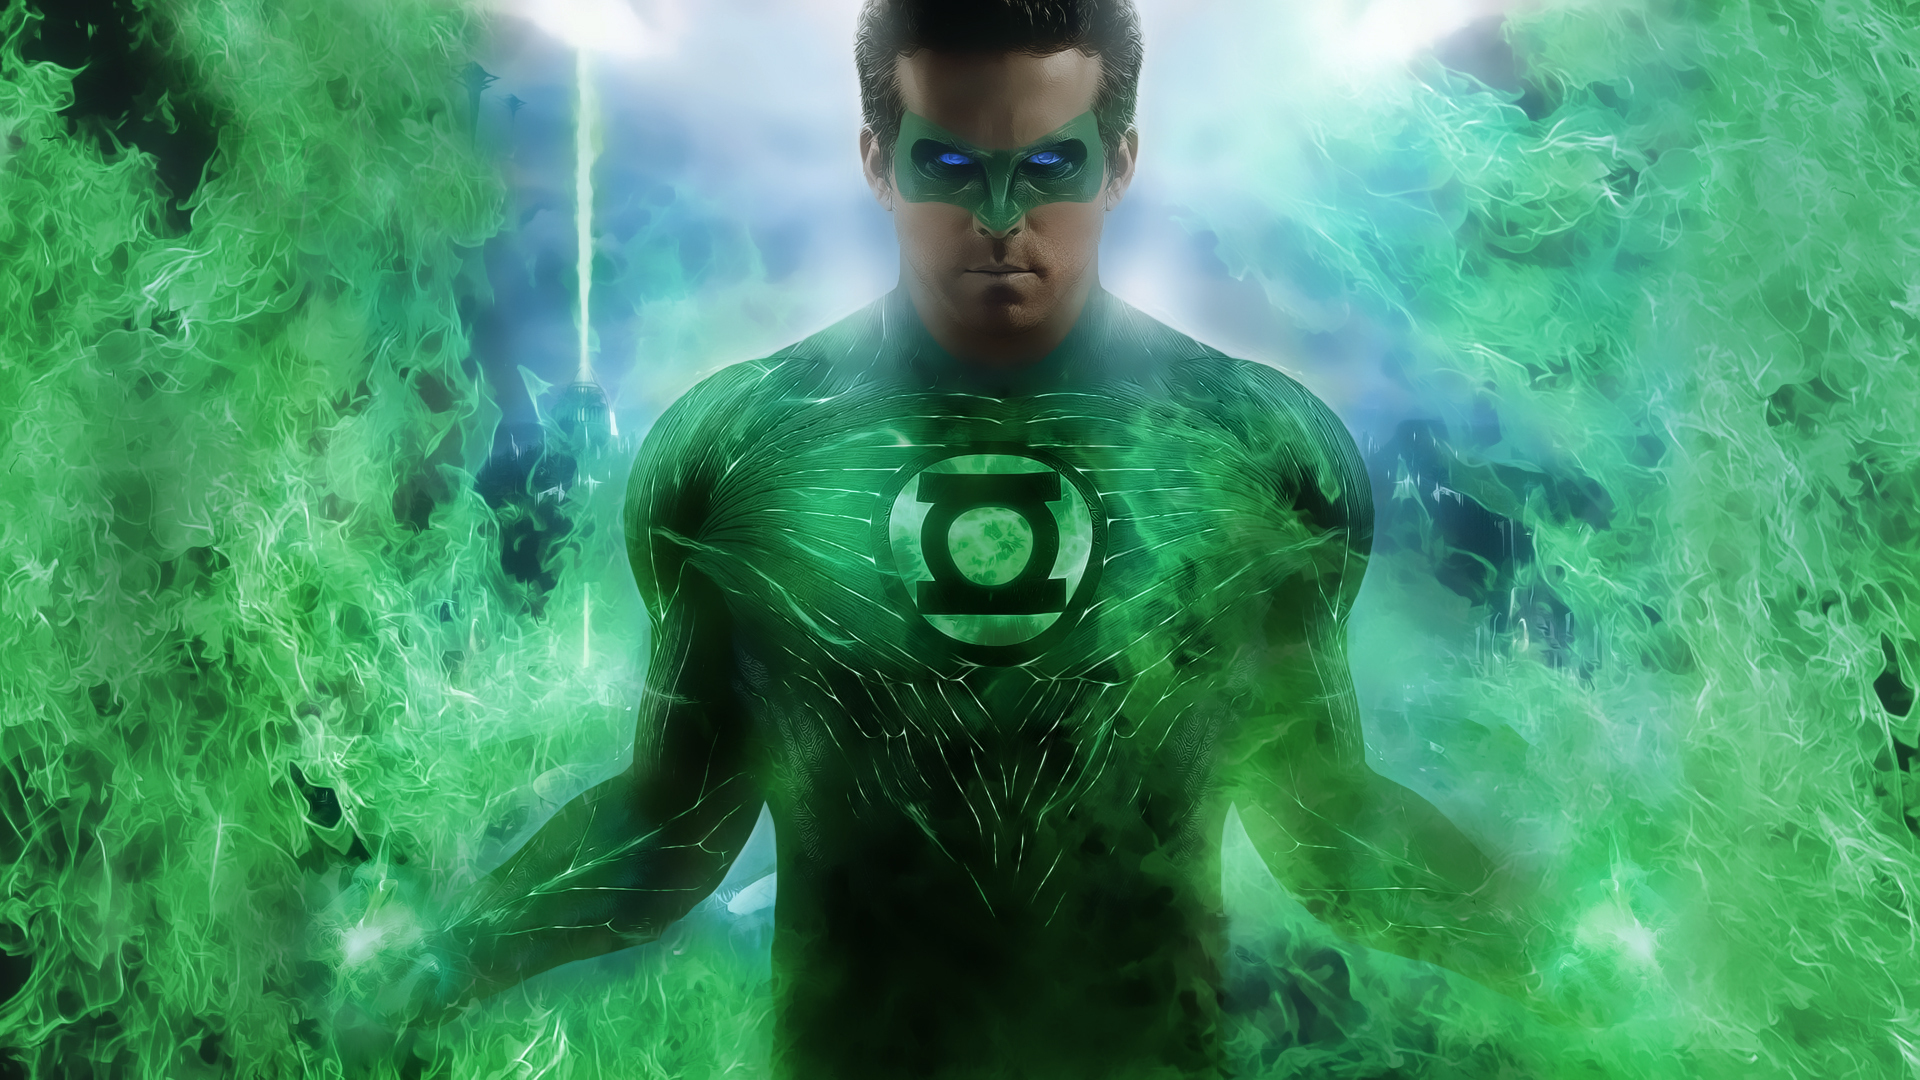 Green Lantern Wallpaper HD 1920x1080